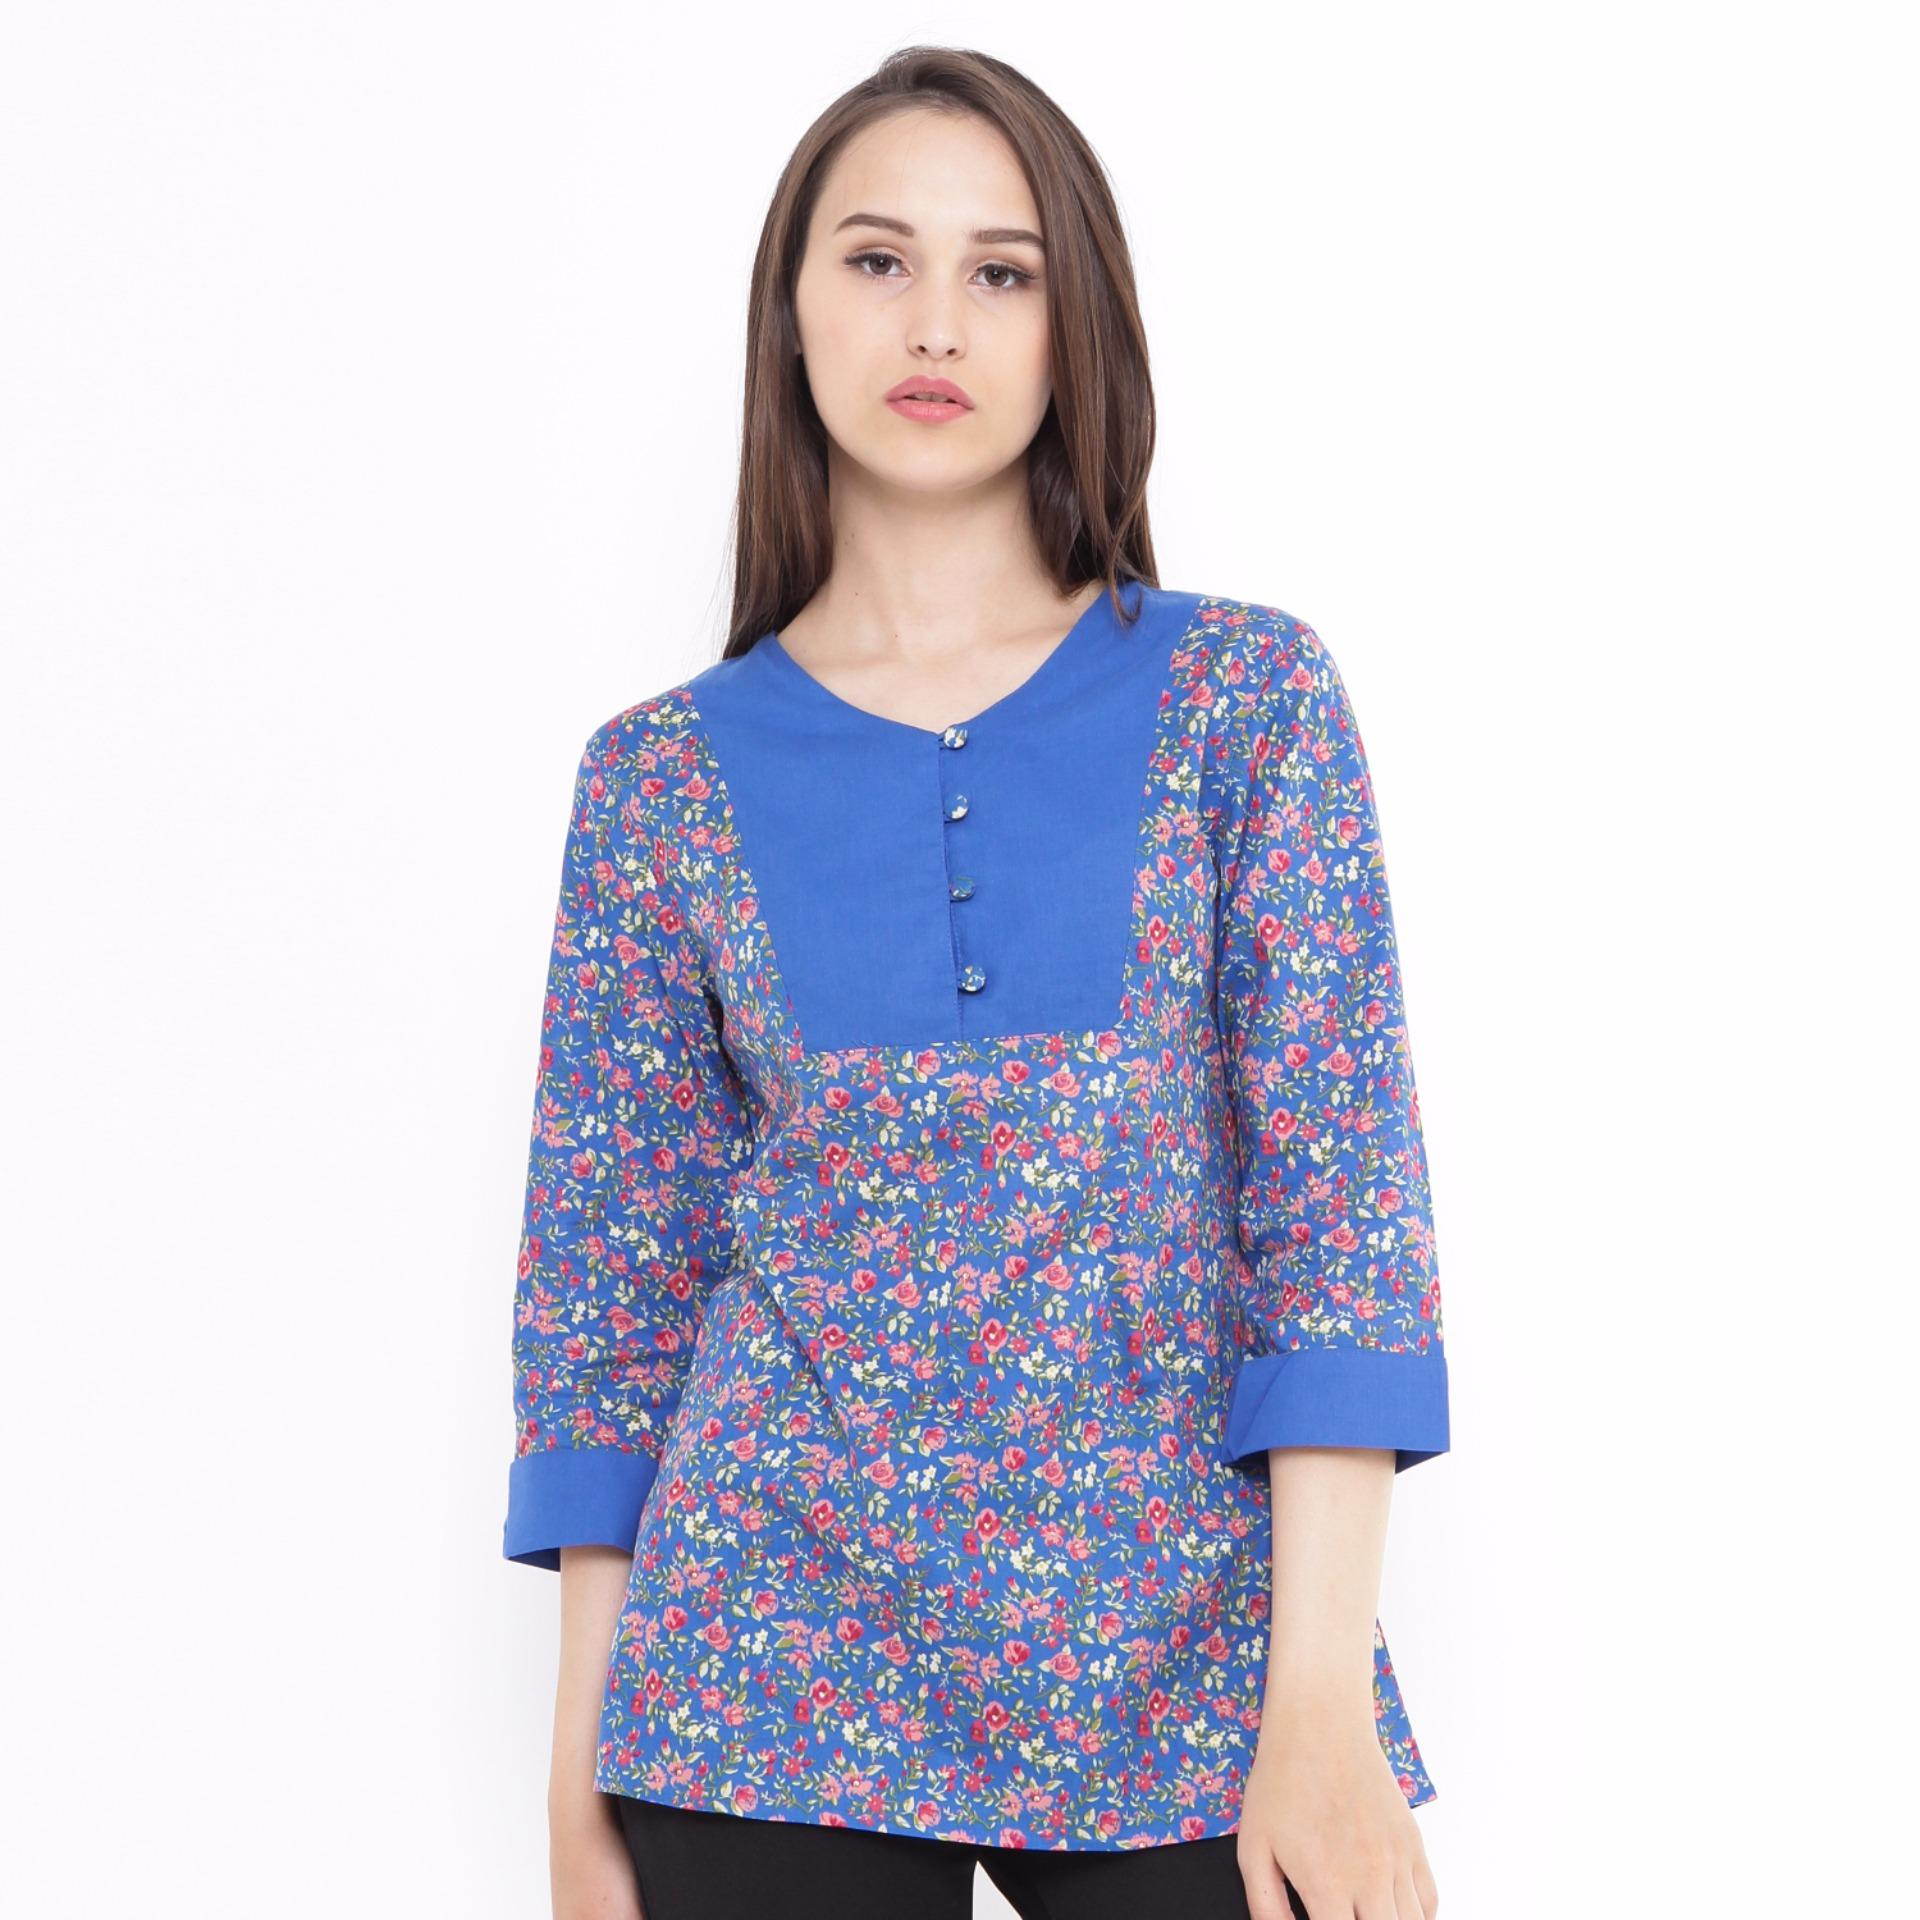 Toko Tunic Floral Combination Blue Mobile Power Ladies L8332 Mobile Power Online